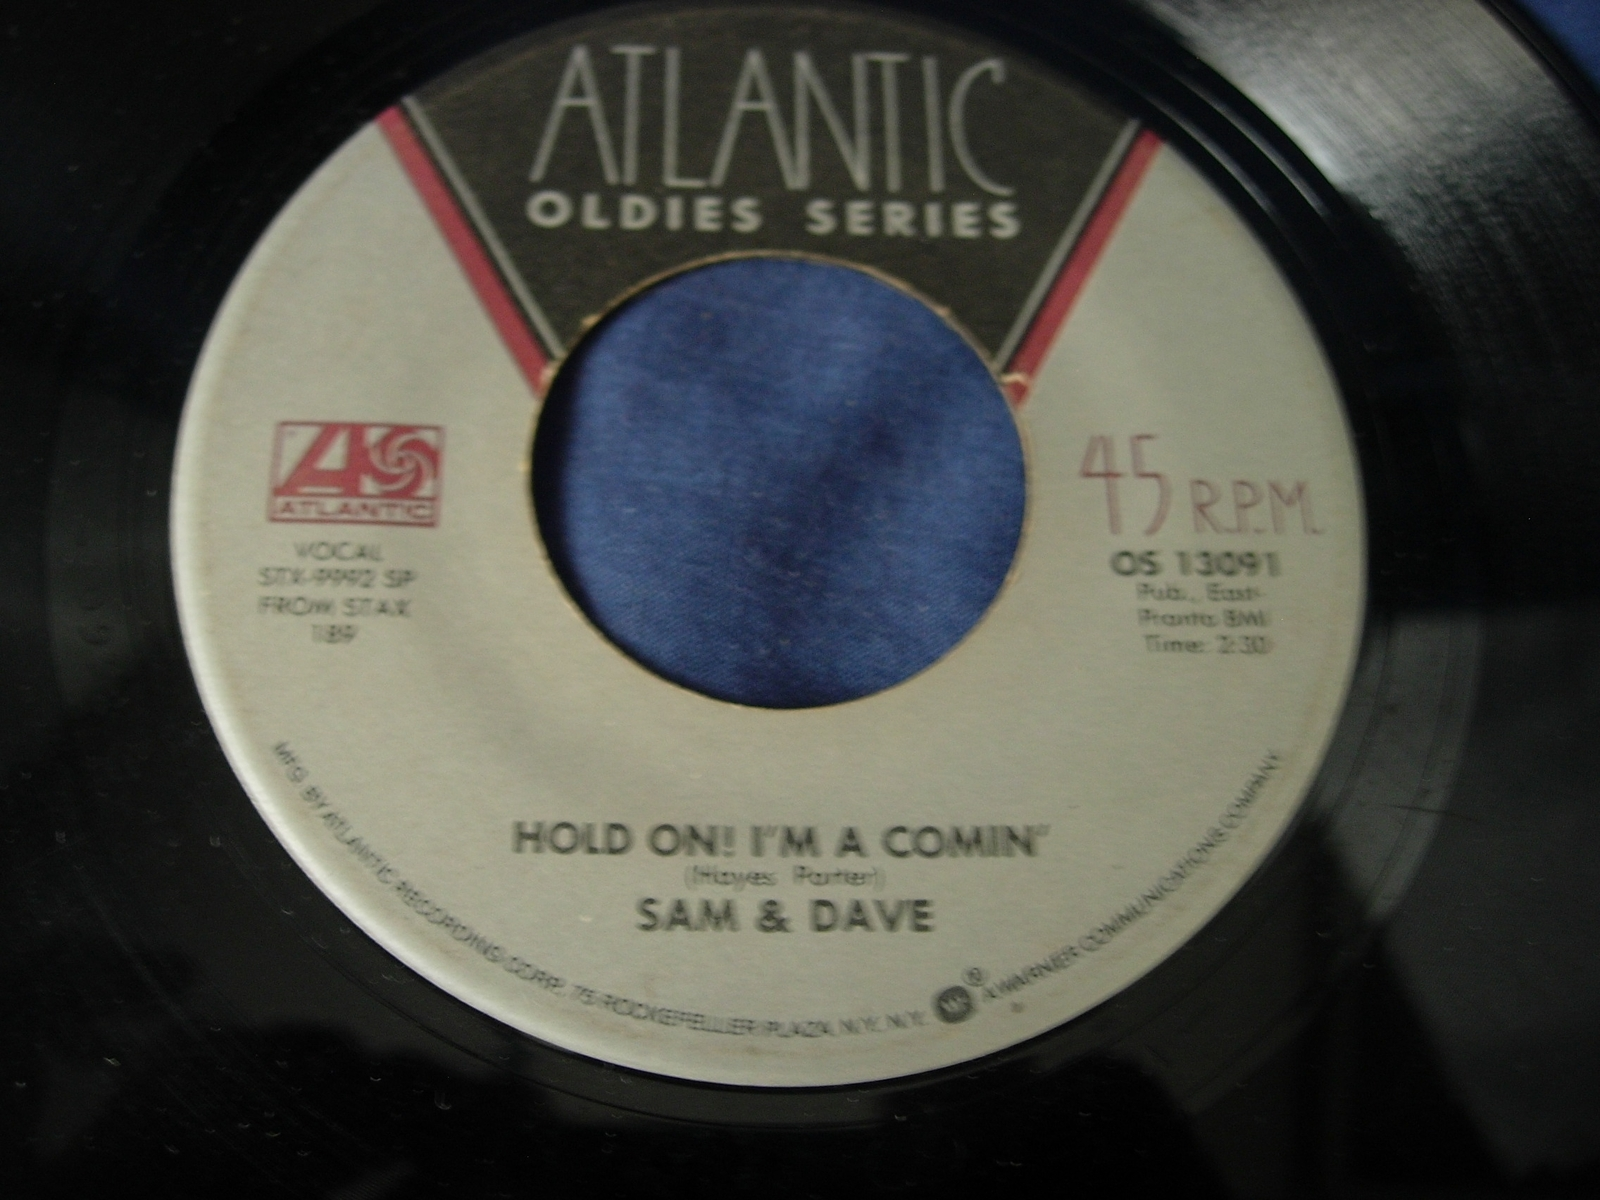 Sam & Dave - Hold On! I'm Comin / I Thank You - Atlantic Oldies Series OS 13091